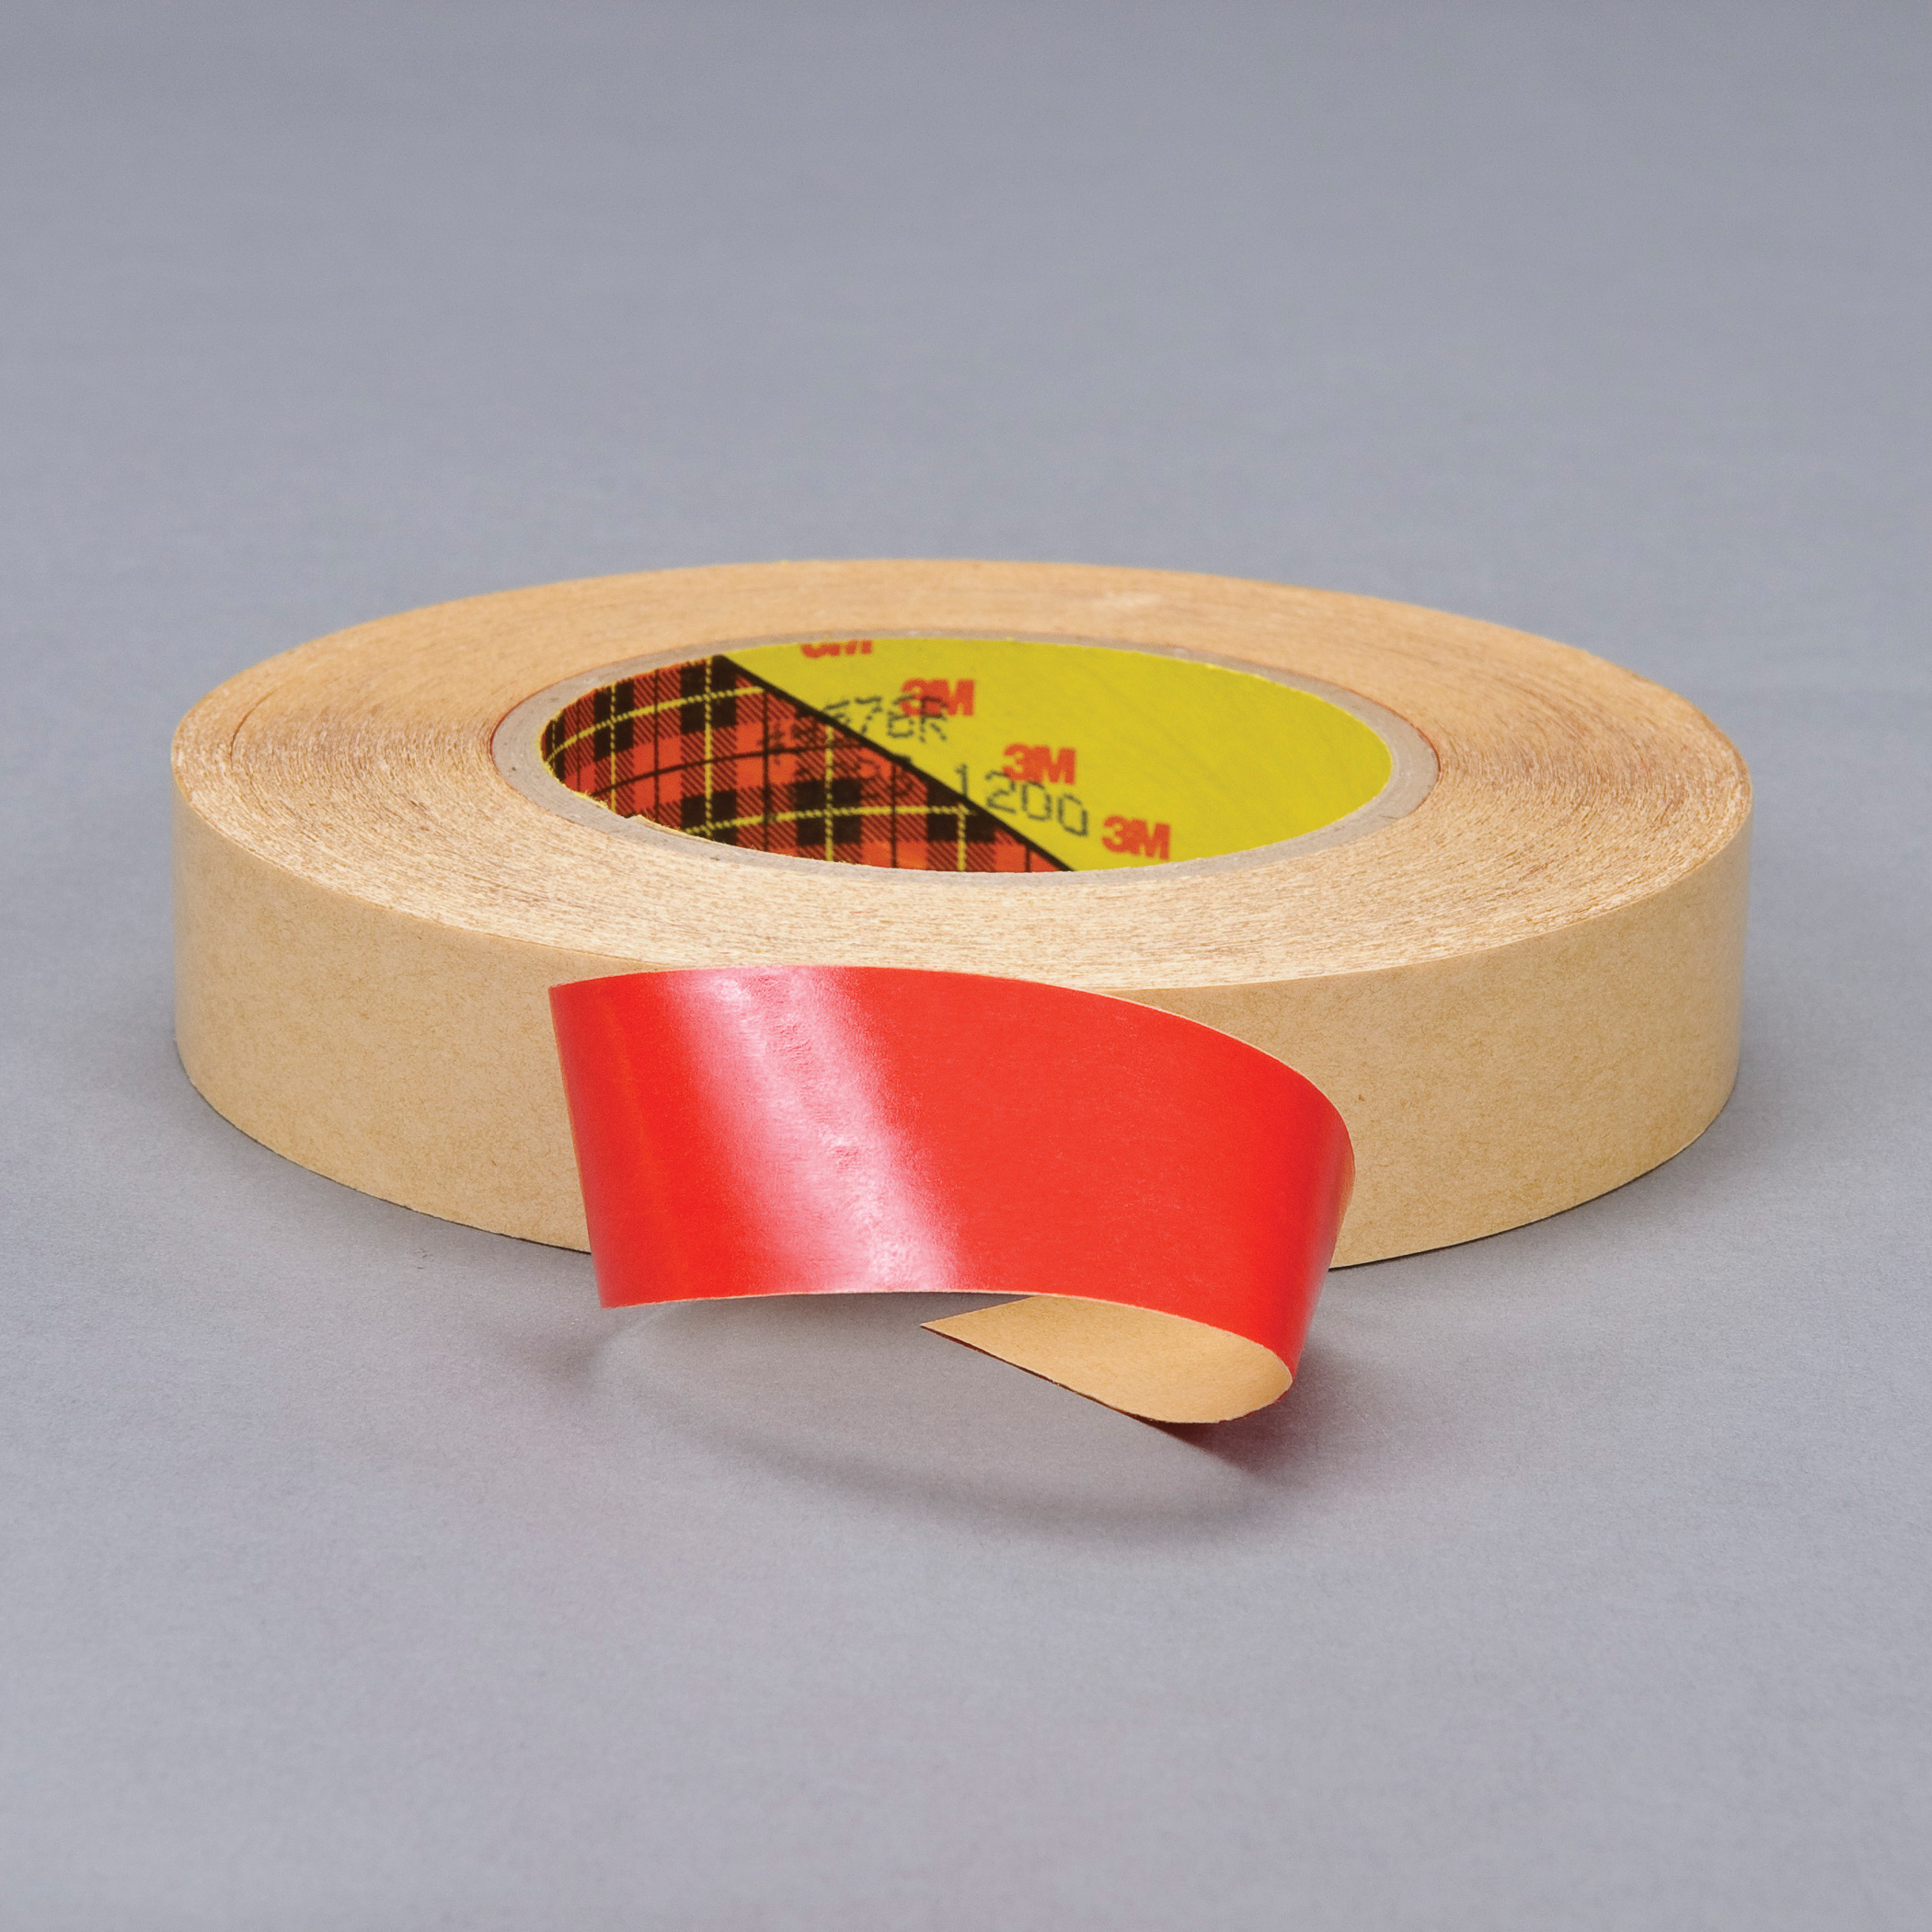 3M™ 021200-40473 Double Coated Tape, 60 yd L x 2 in W, 4 mil THK, 400HT Acrylic Adhesive, Polypropylene Backing, Red